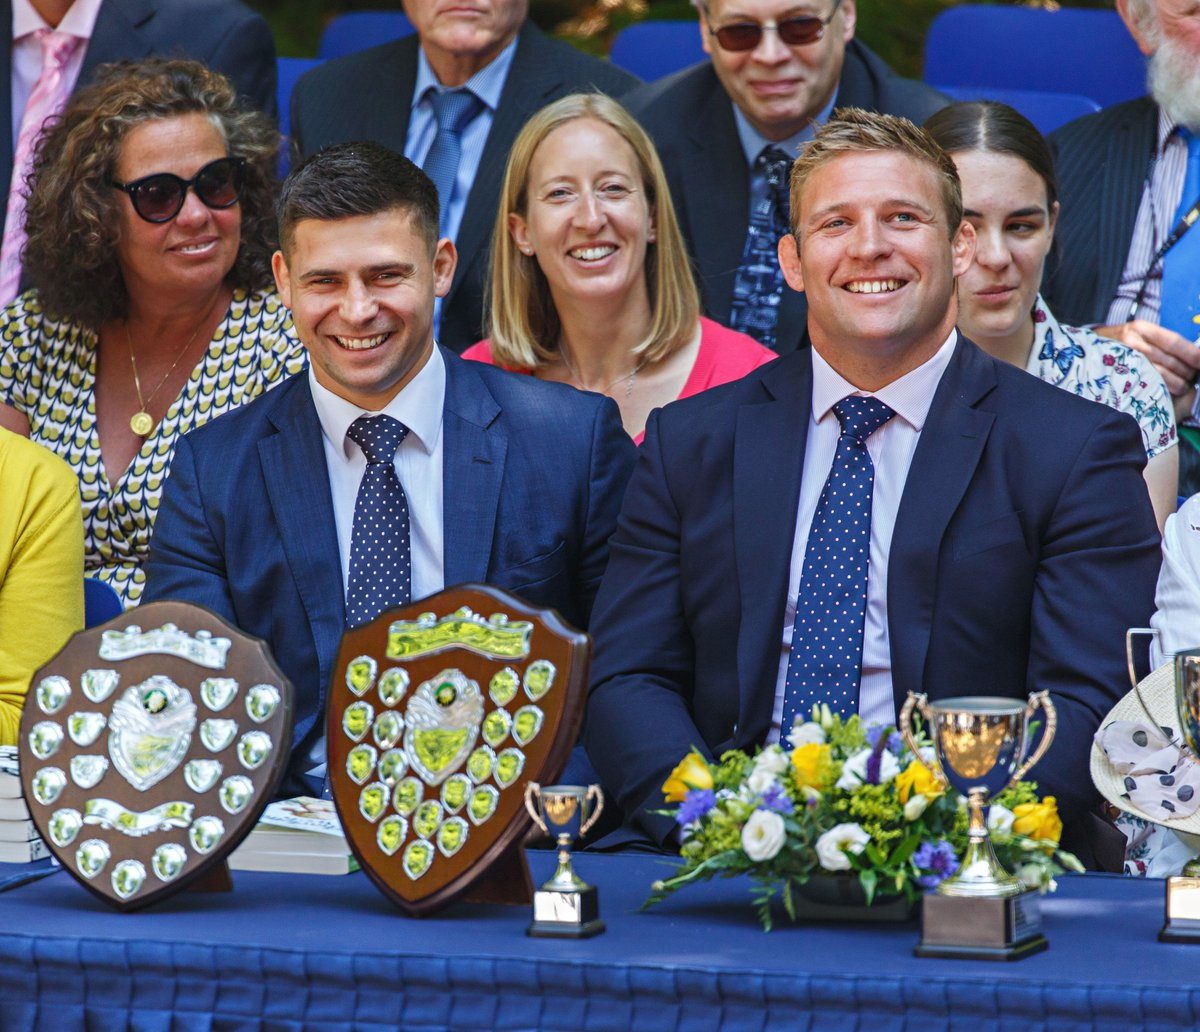 What a pleasure to welcome back to school alumni @TomYoungs87 and @benyoungs09 for this years Speech Day at the Prep School. The pupils loved hearing your inspirational speeches. Read about their visit at bit.ly/2m7hZWD